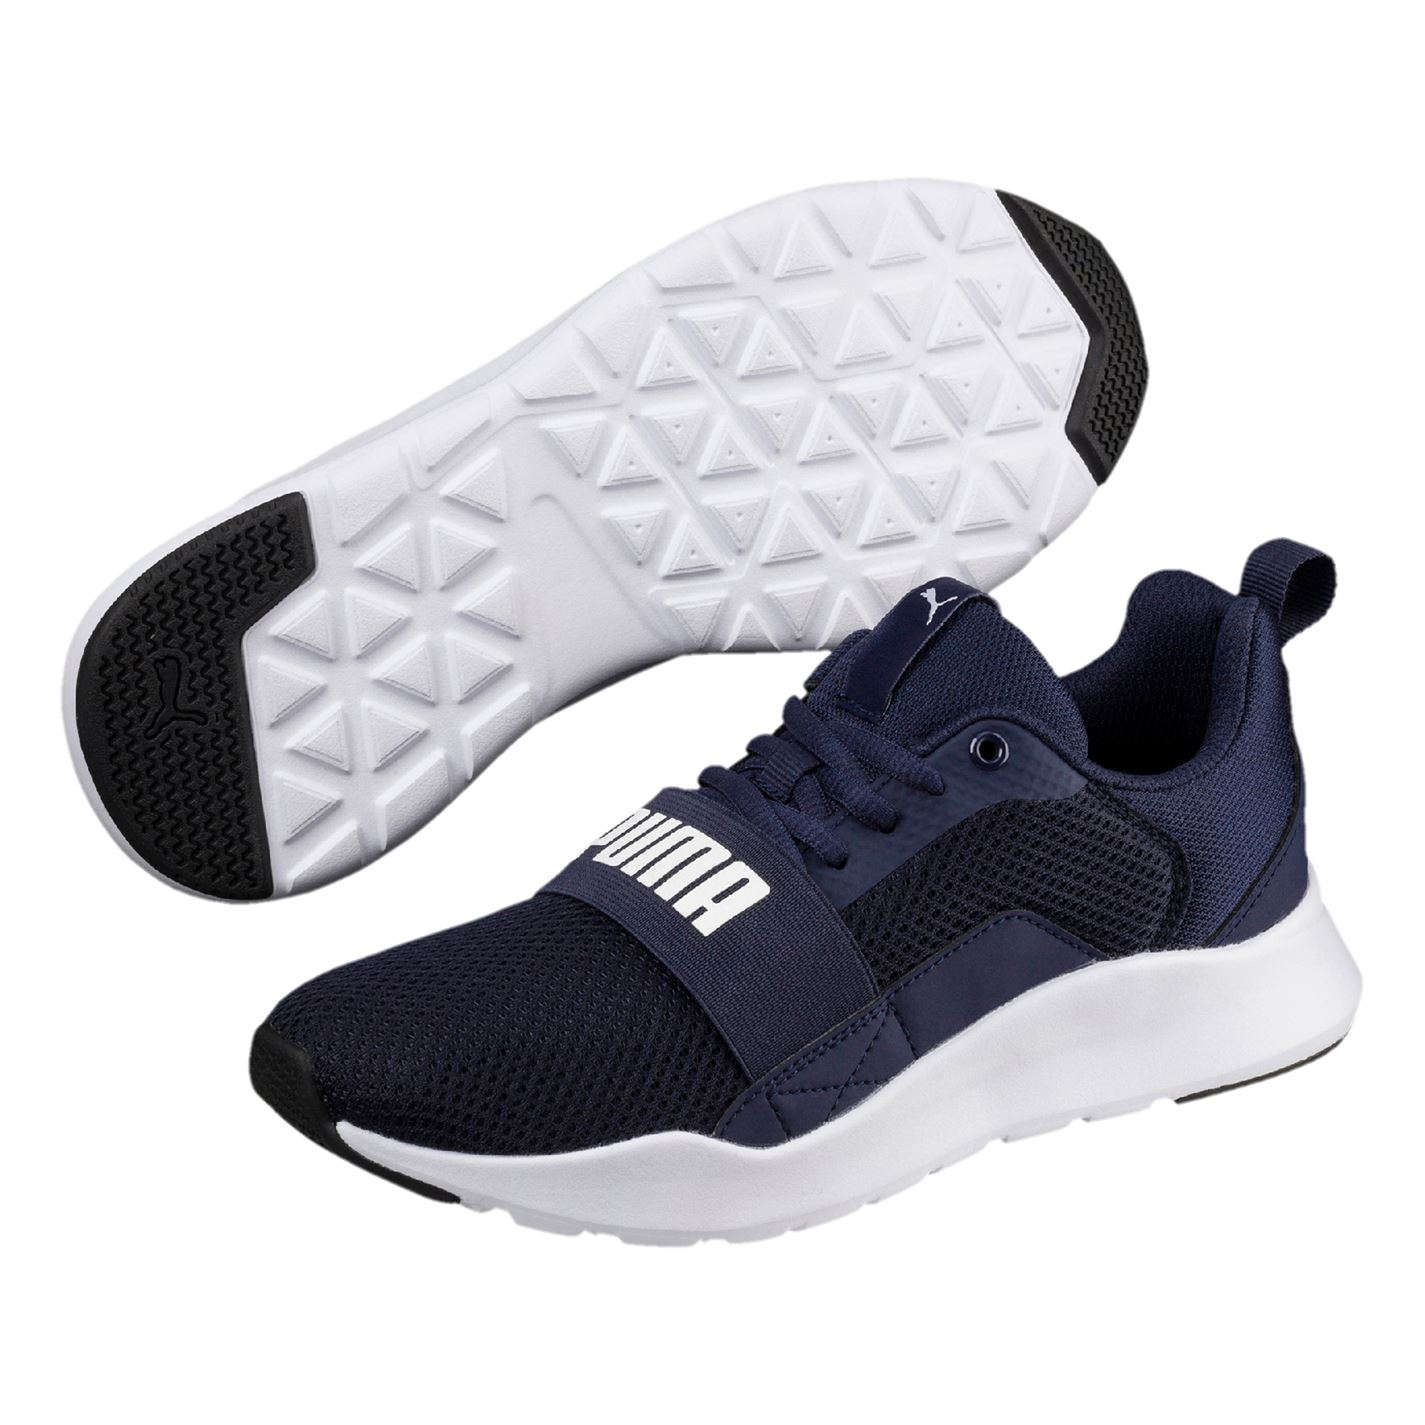 1f341de7d1a Puma Kids Boys Wired Junior Trainers Runners Lace Up Breathable ...